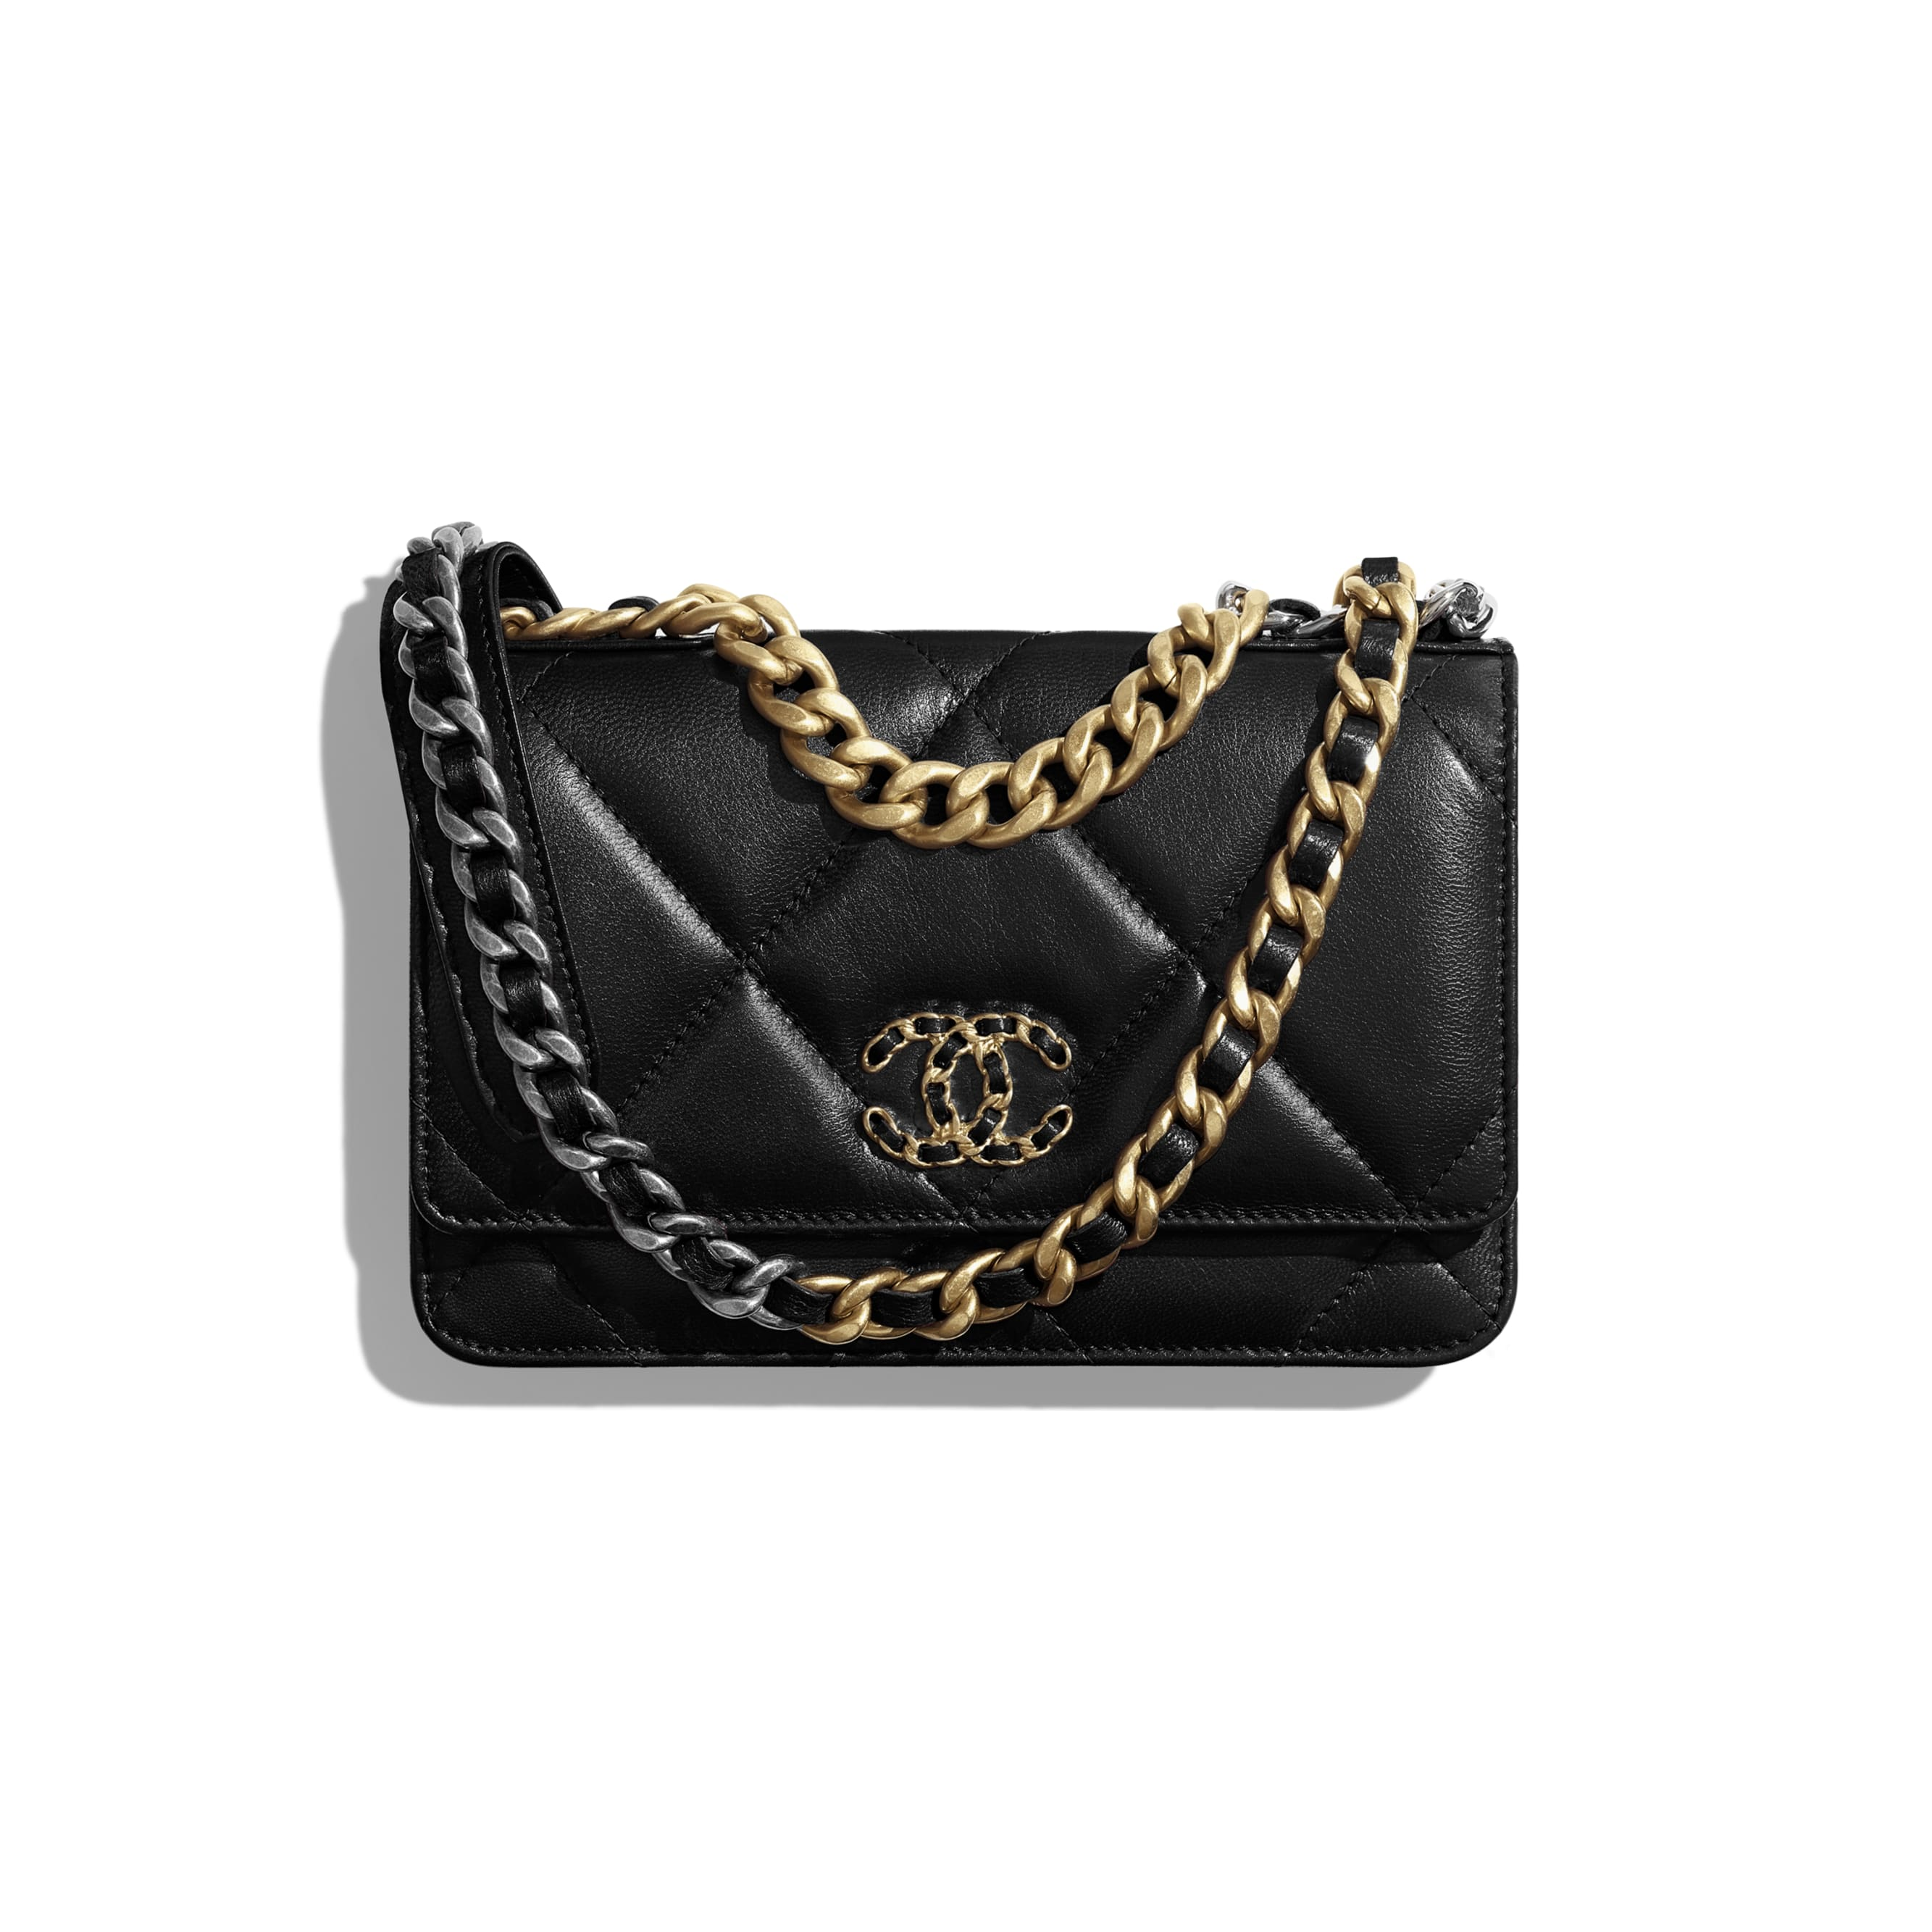 CHANEL 19 Wallet on Chain - Black - Goatskin, Gold-Tone, Silver-Tone & Ruthenium-Finish Metal - Default view - see standard sized version